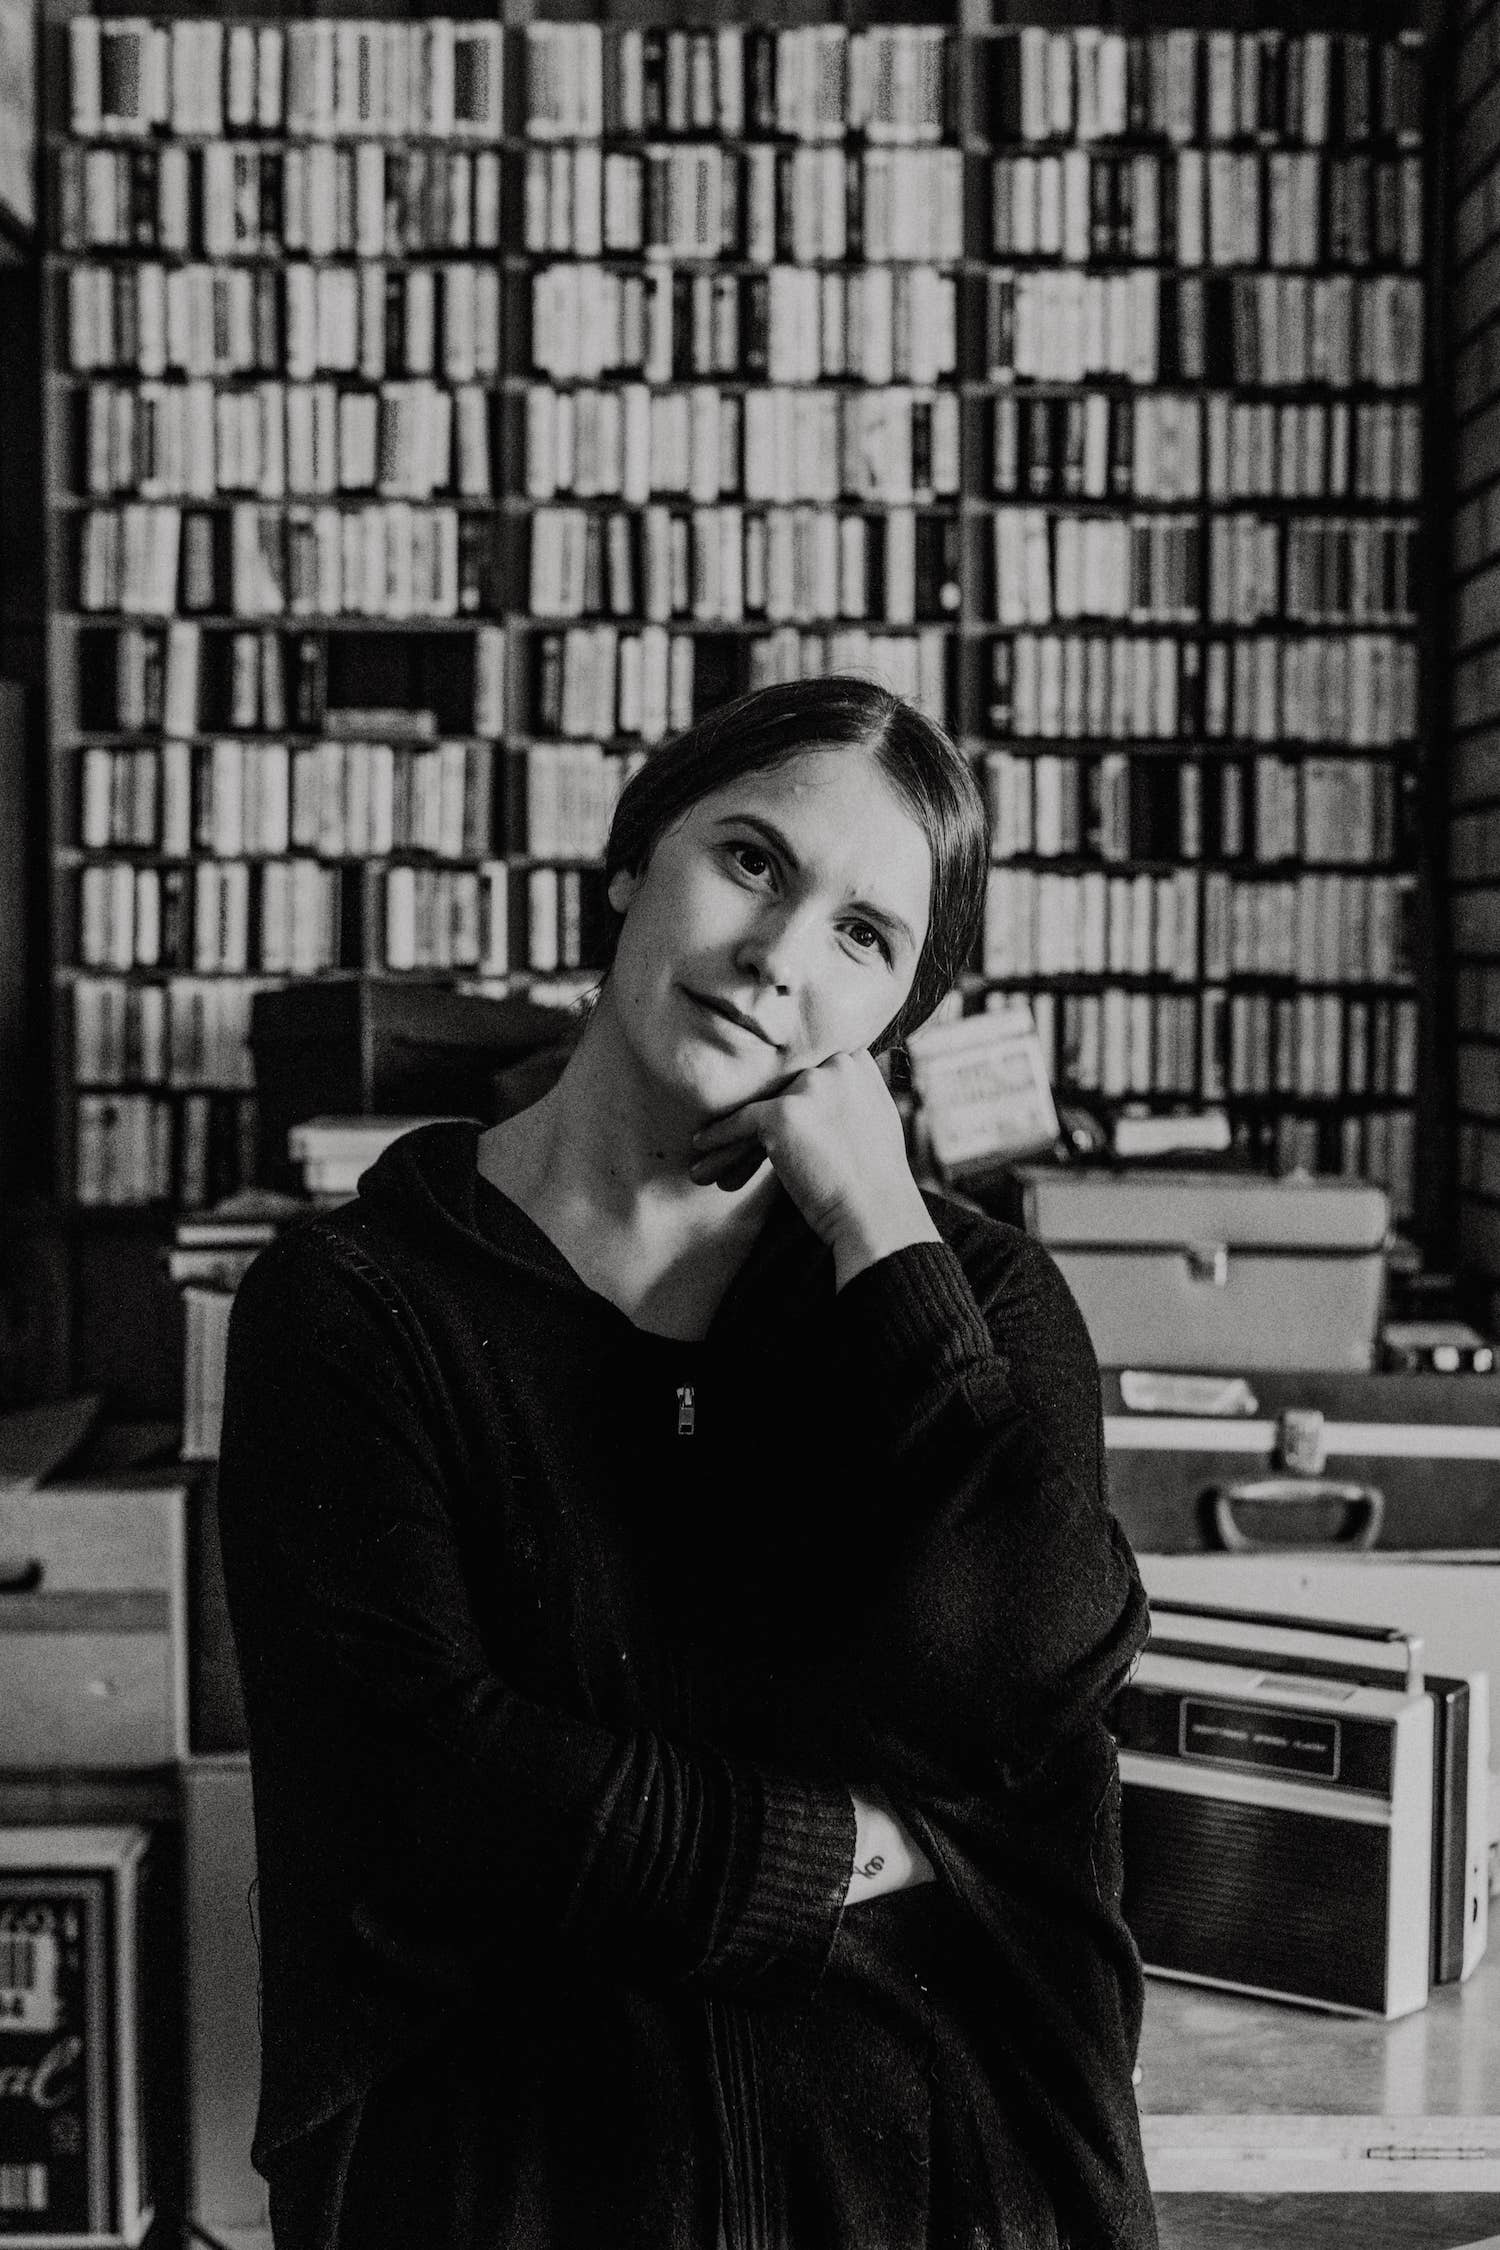 A thoughtful girl in a library.